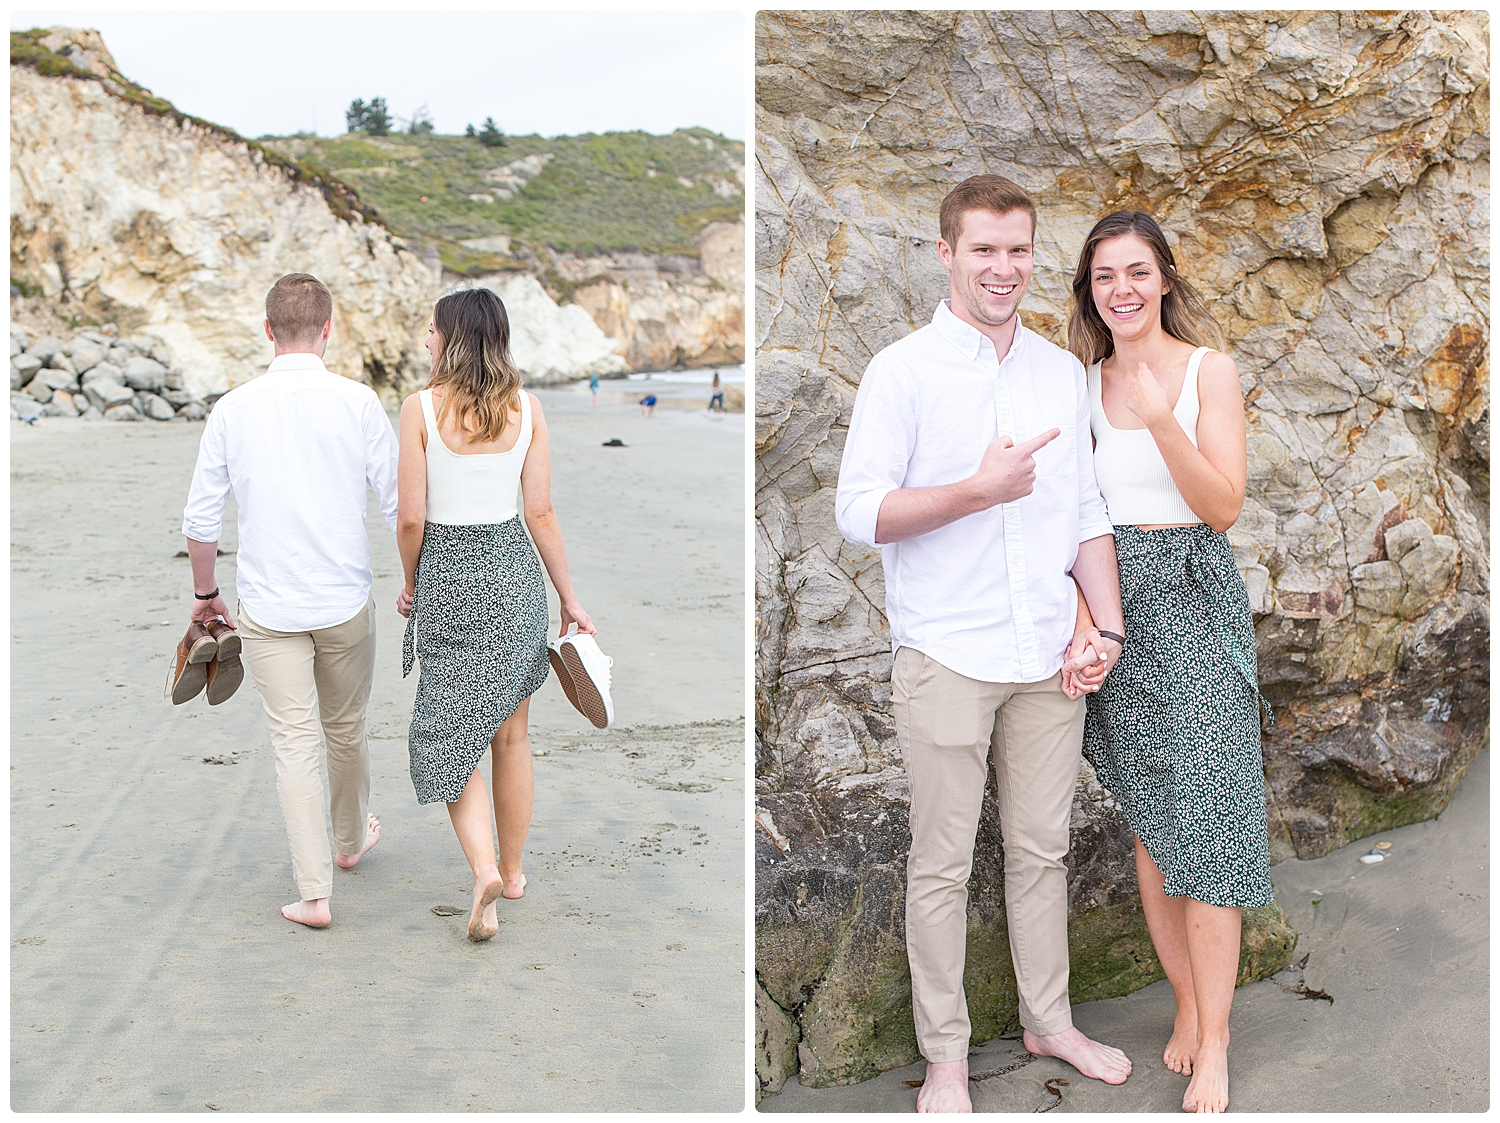 061919_EthanEmma_proposal_Renoda Campbell Photography-6997.jpg